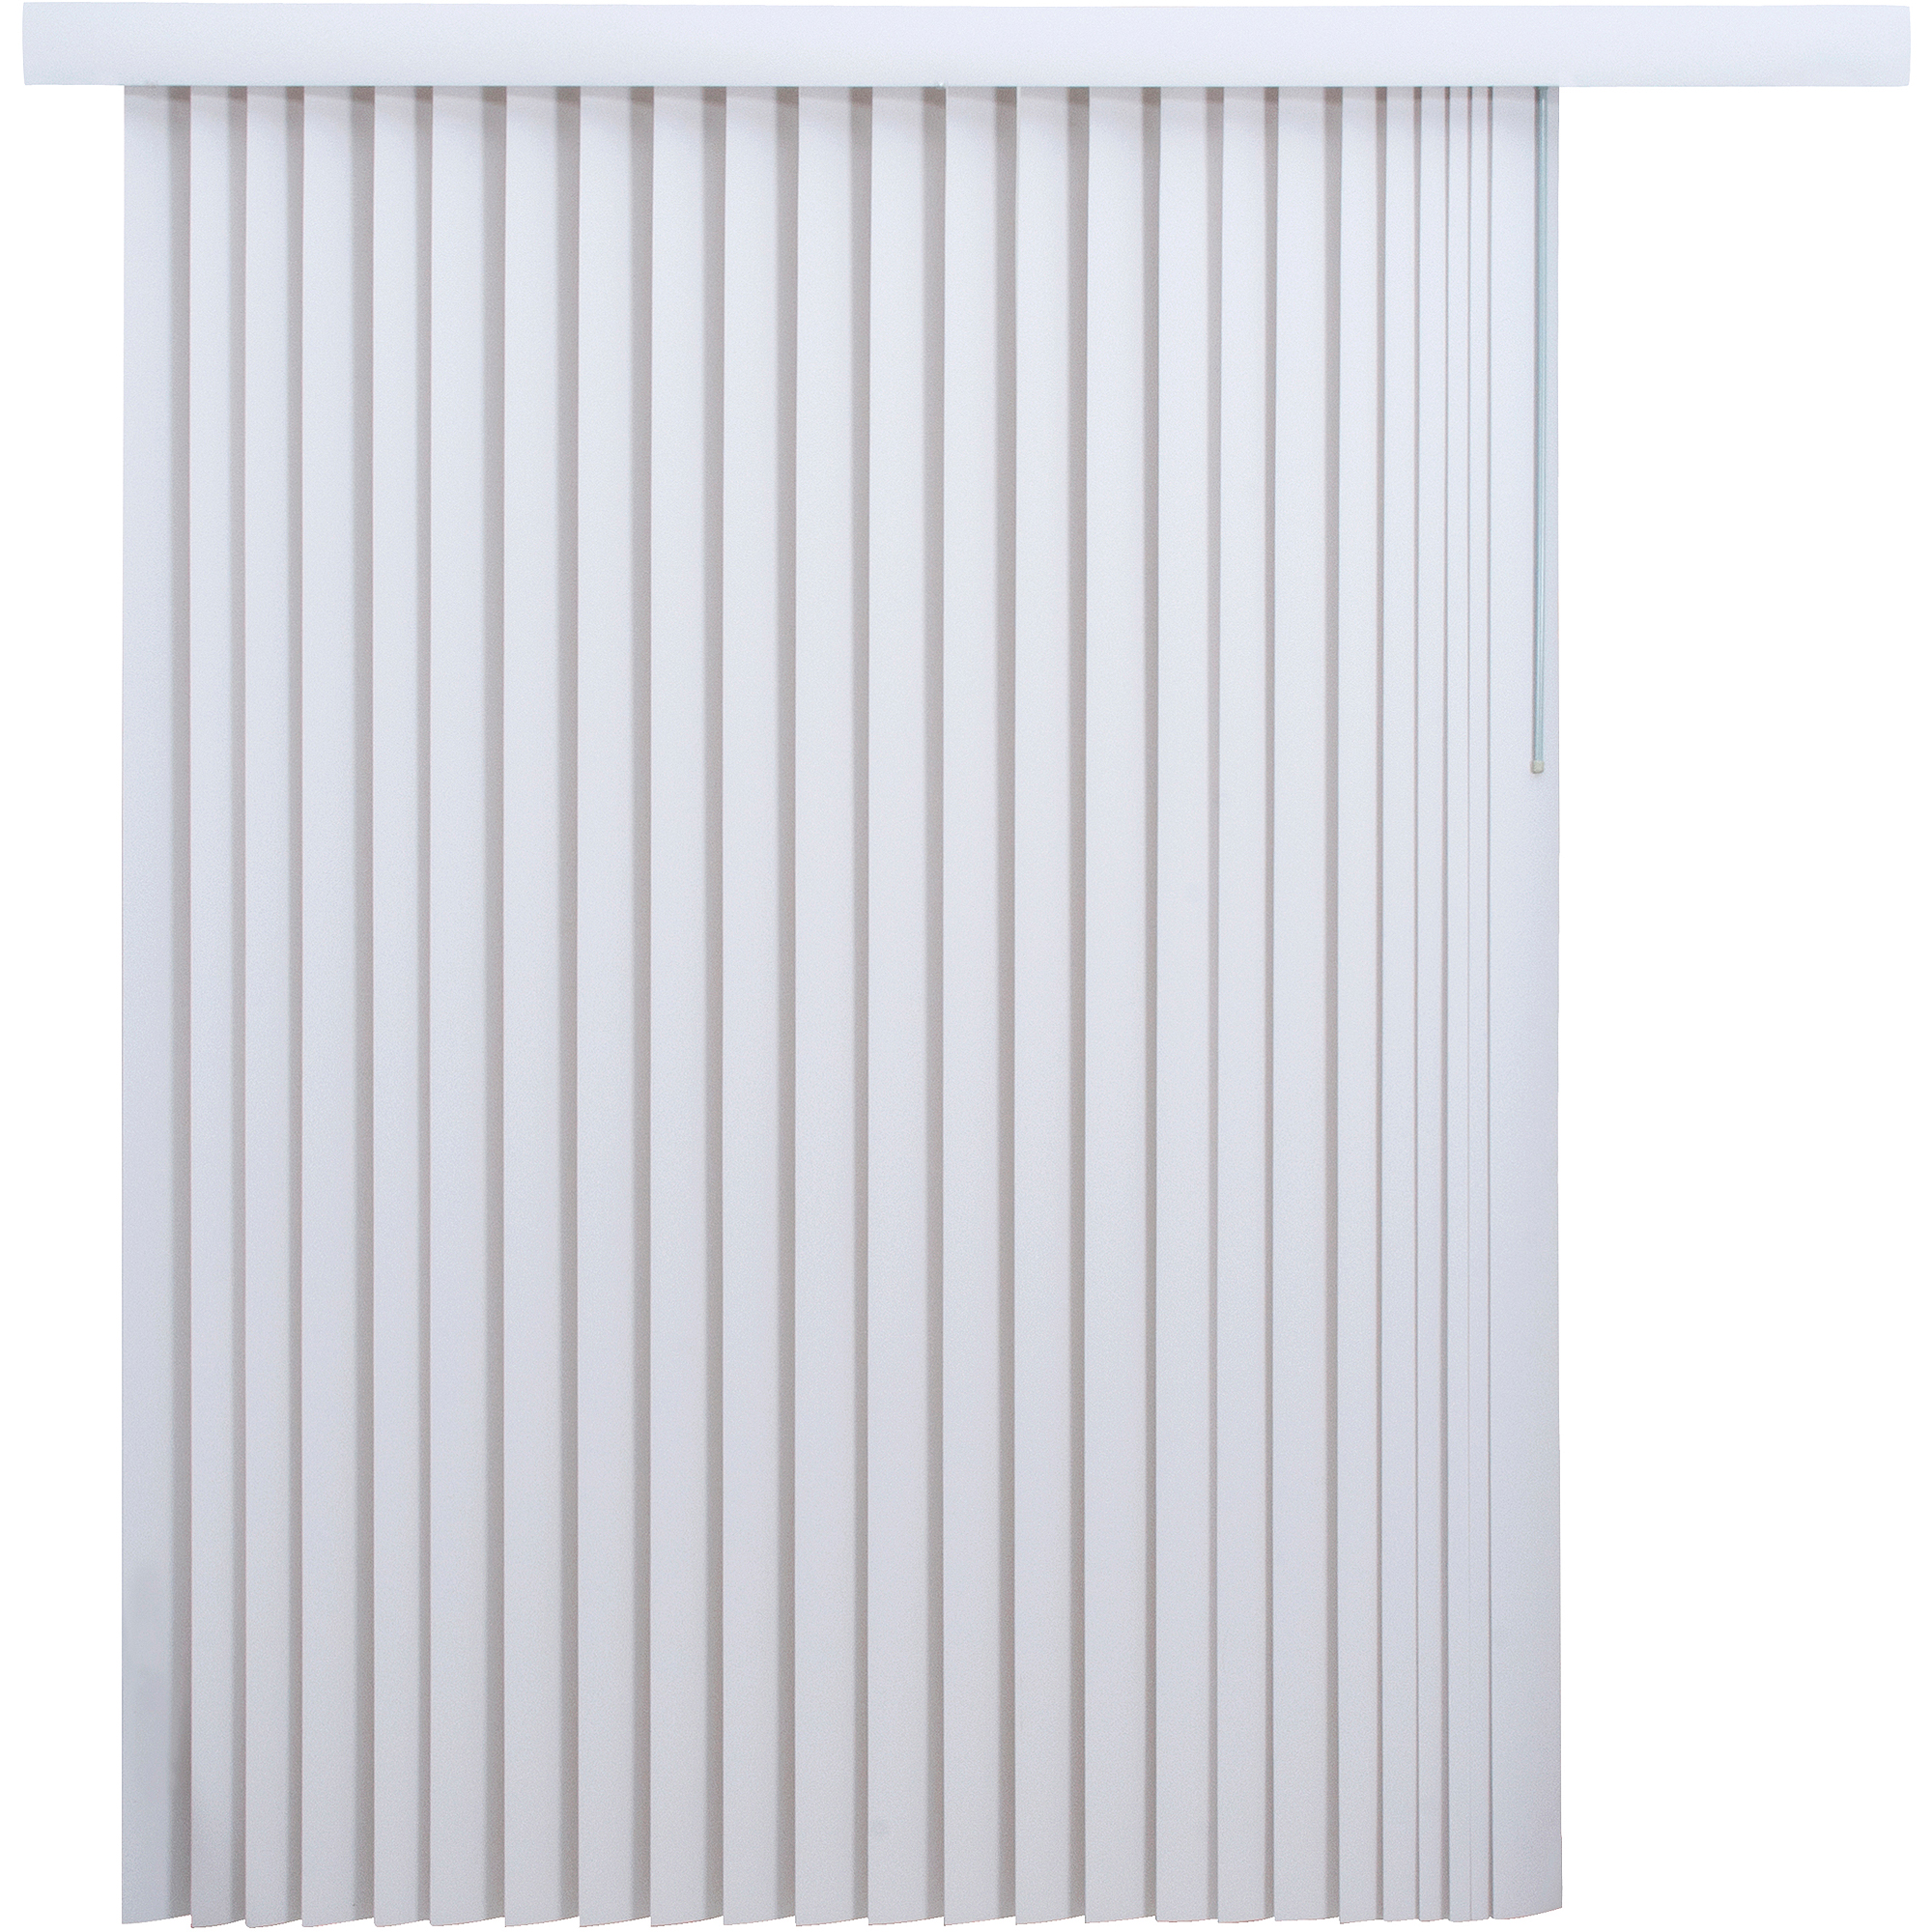 mainstays light-filtering vertical blinds, white - walmart.com FZDQYPS